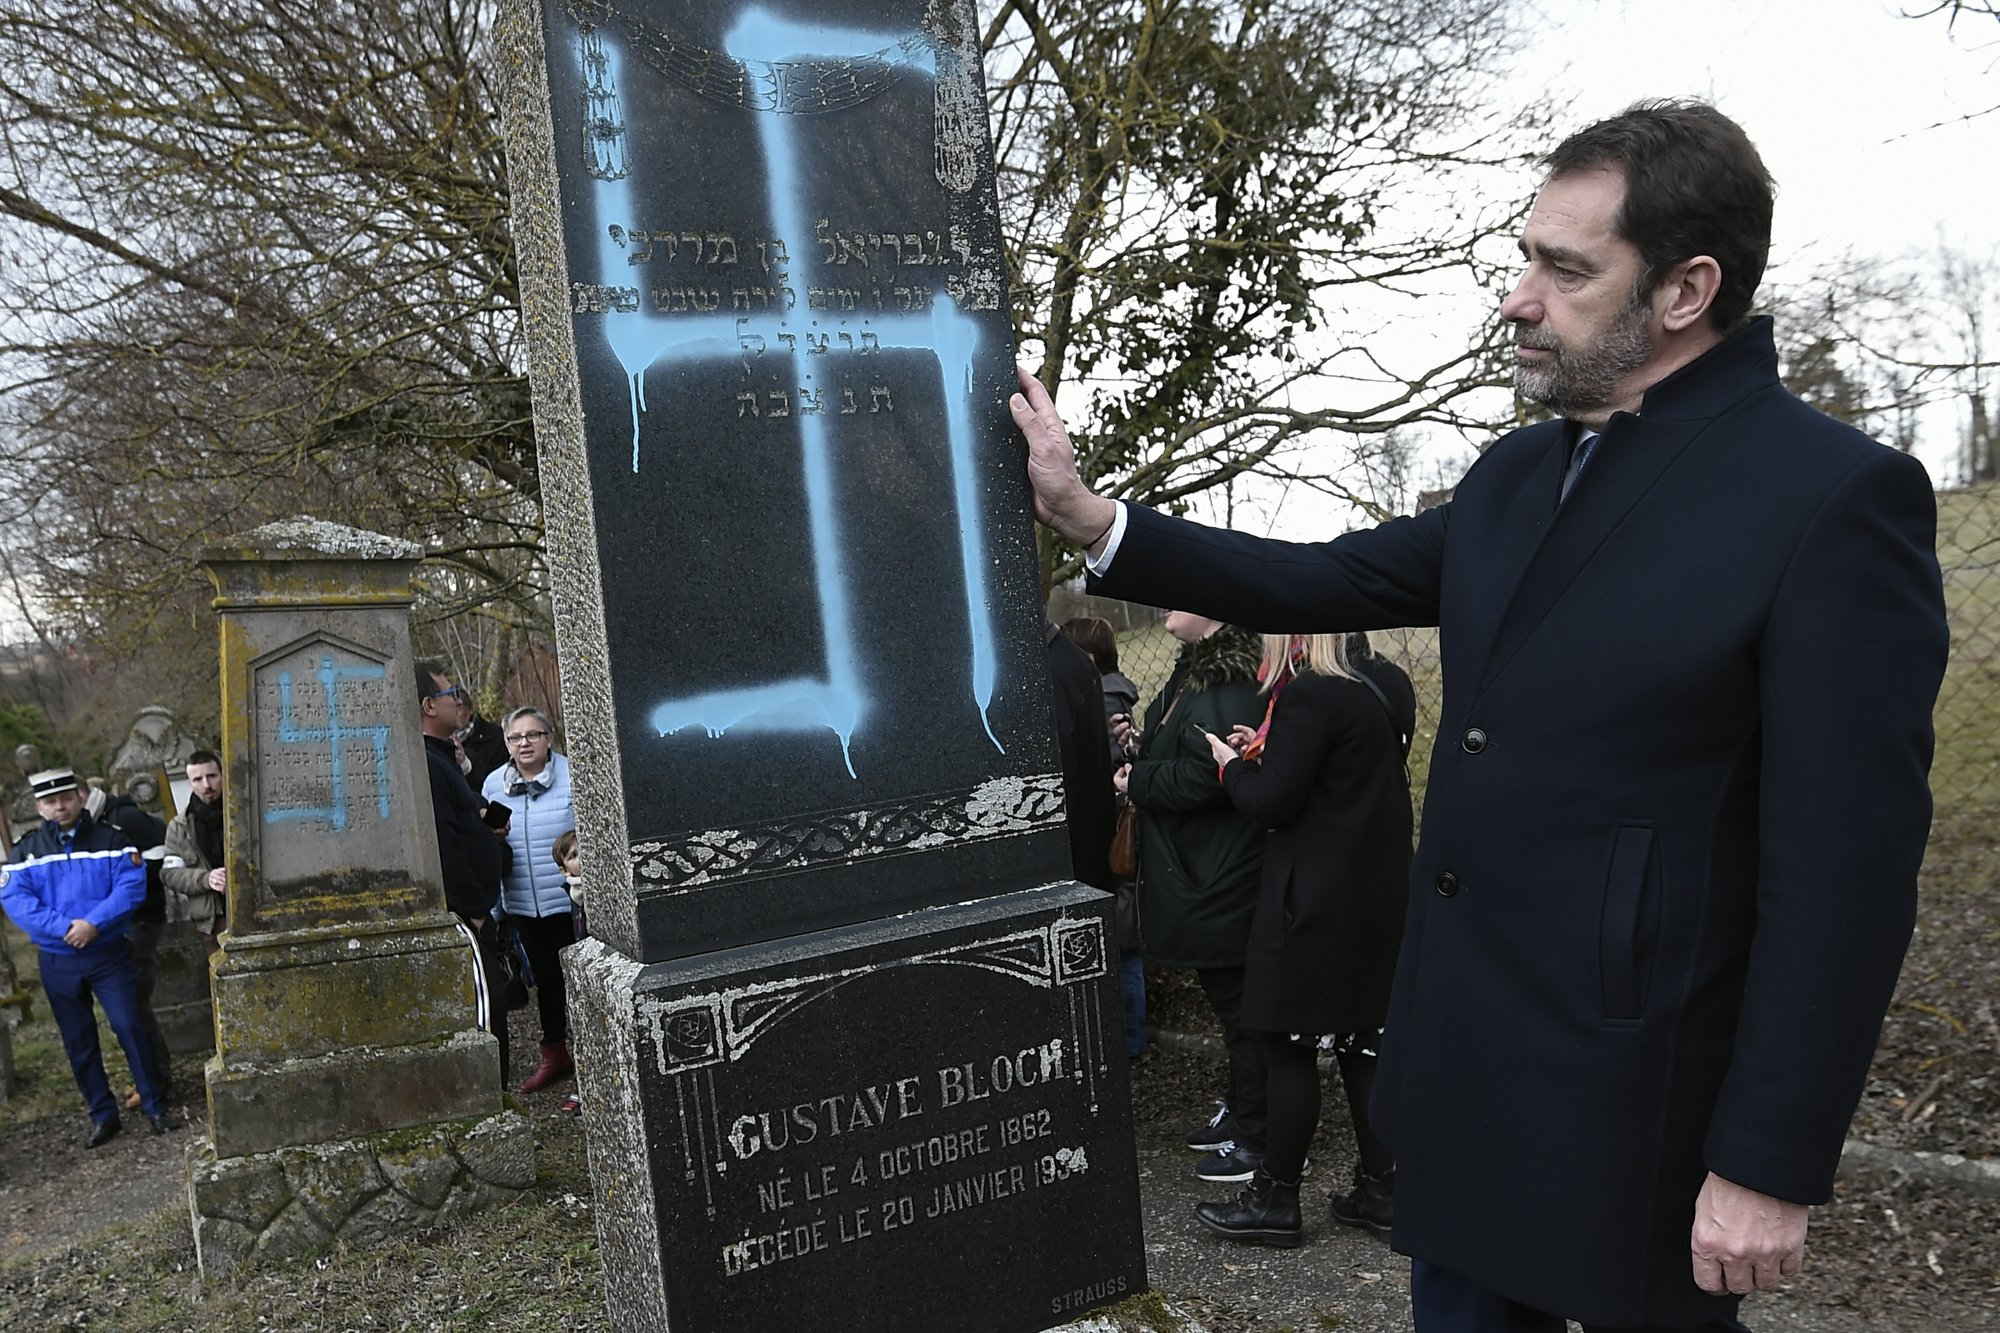 Jewish leader warns Christians amid rising anti-Semitism: 'They start with Jews, but they never finish with...